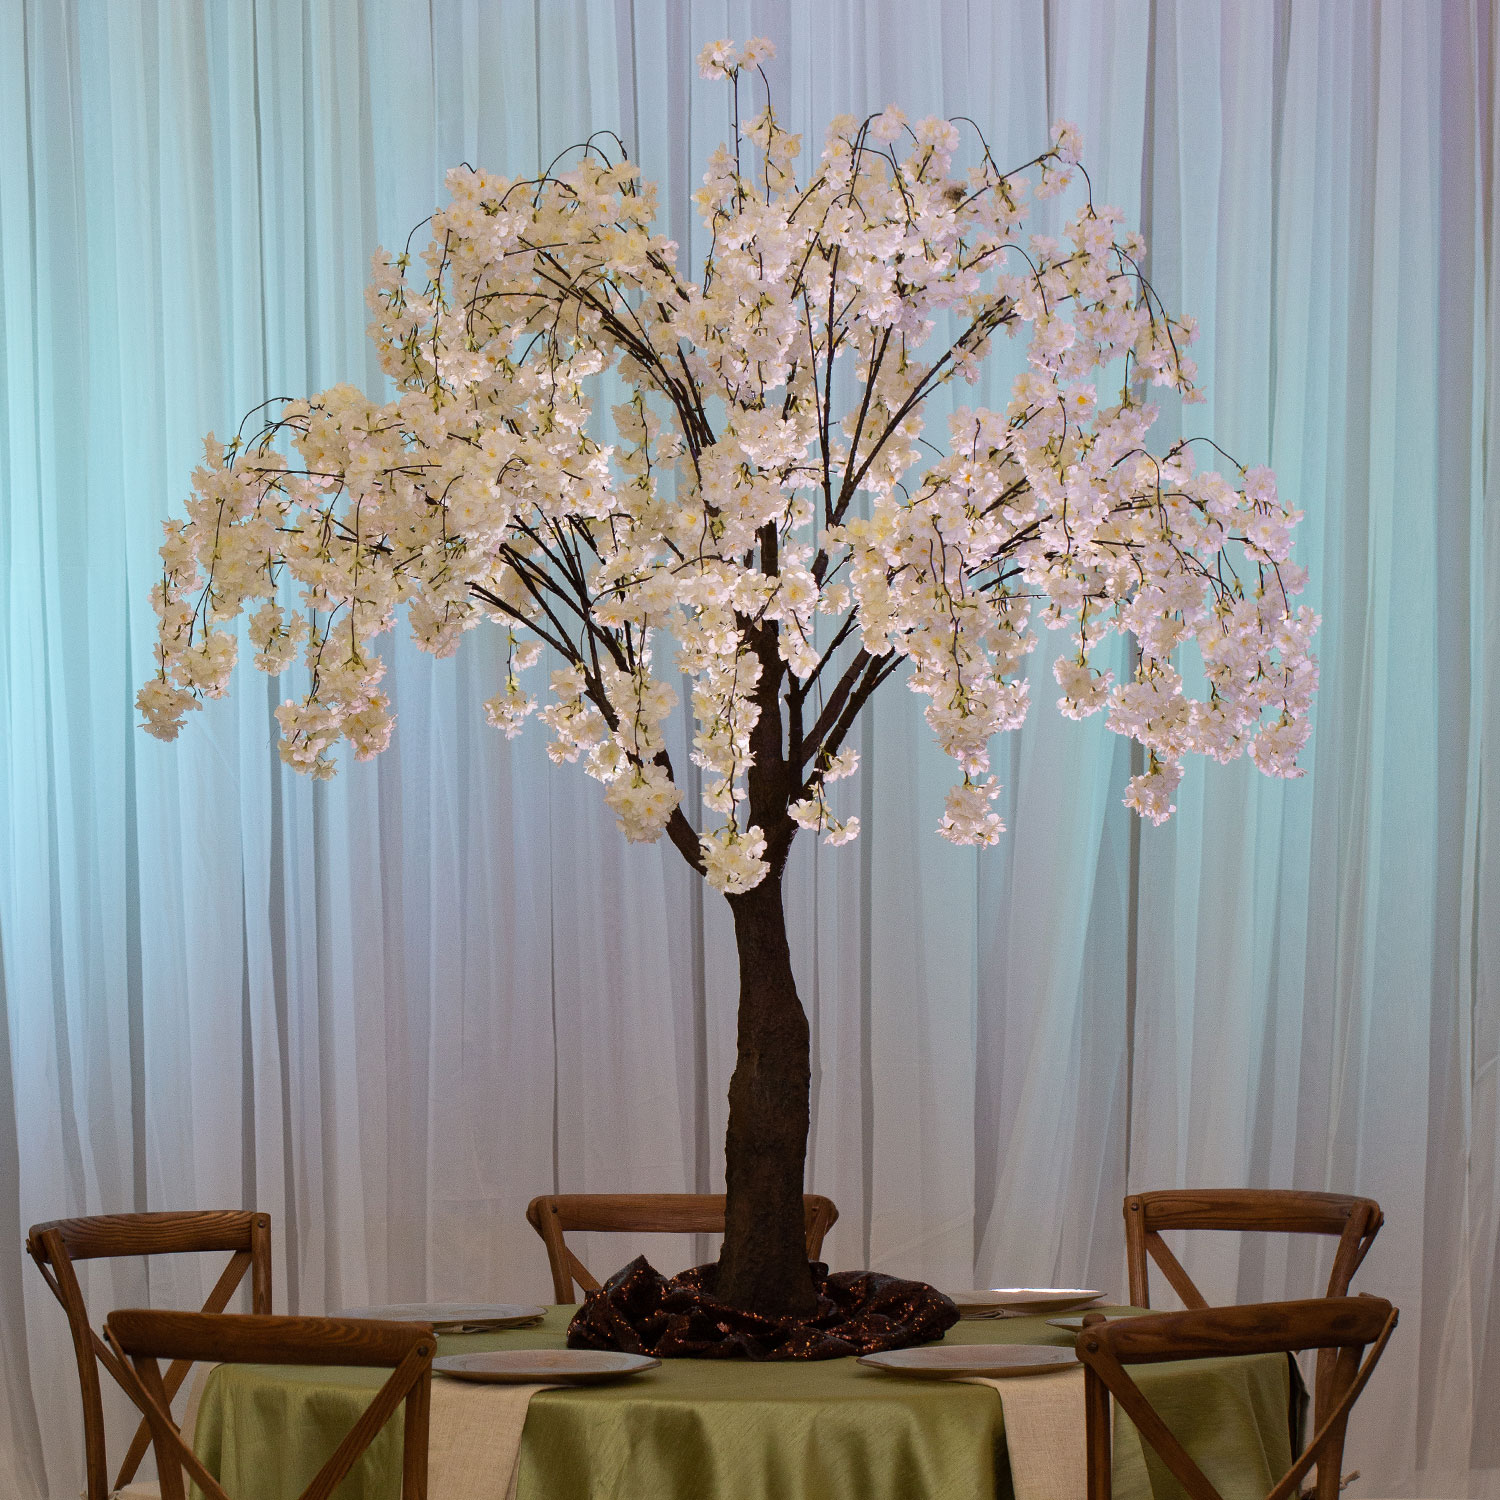 6ft Drooping Cherry Blossom Tree Floor Or Grand Centerpiece White